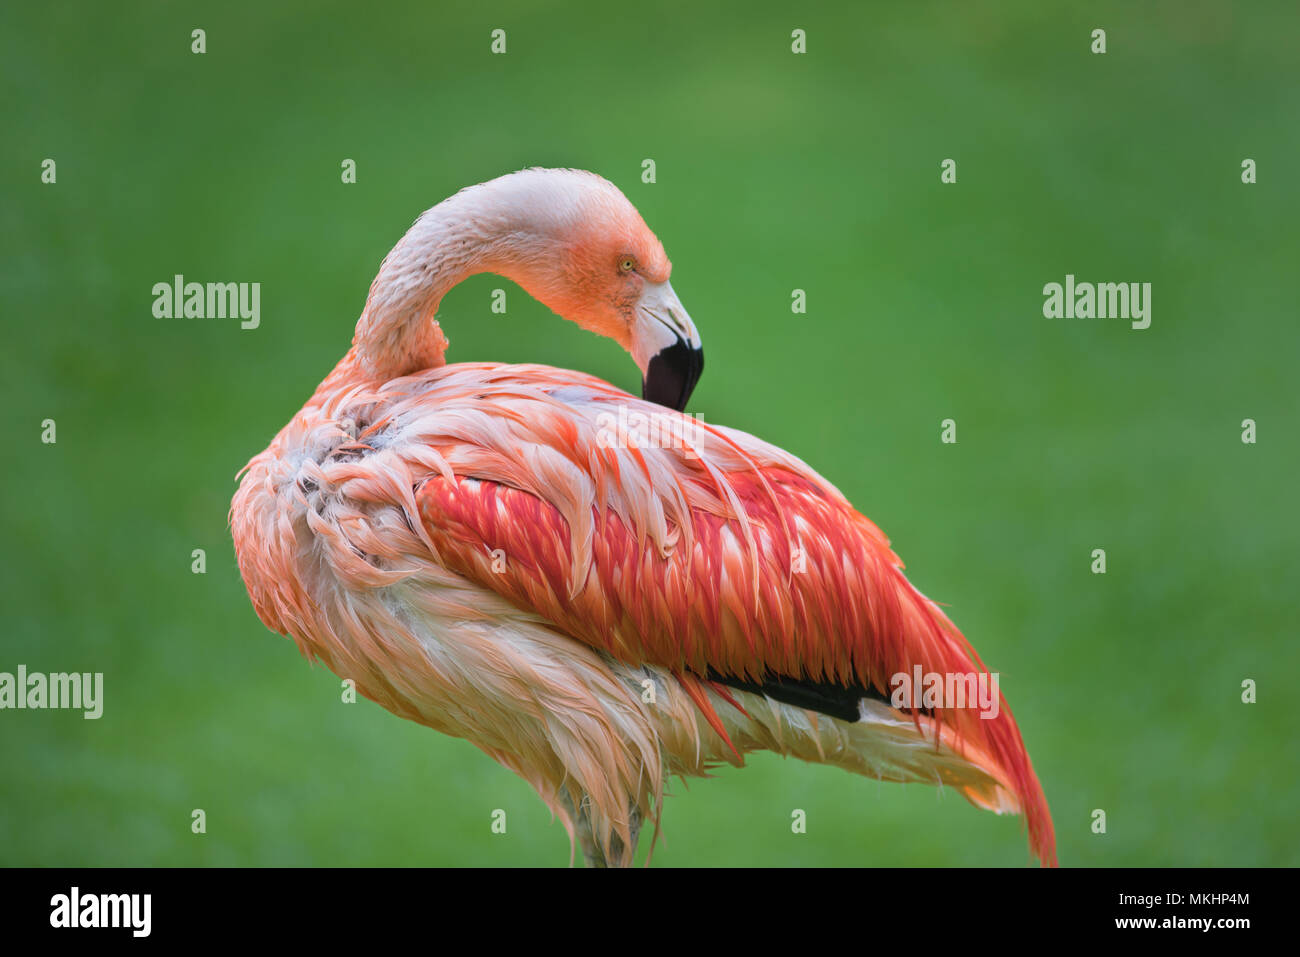 Flamingo bird on green natural background - Stock Image